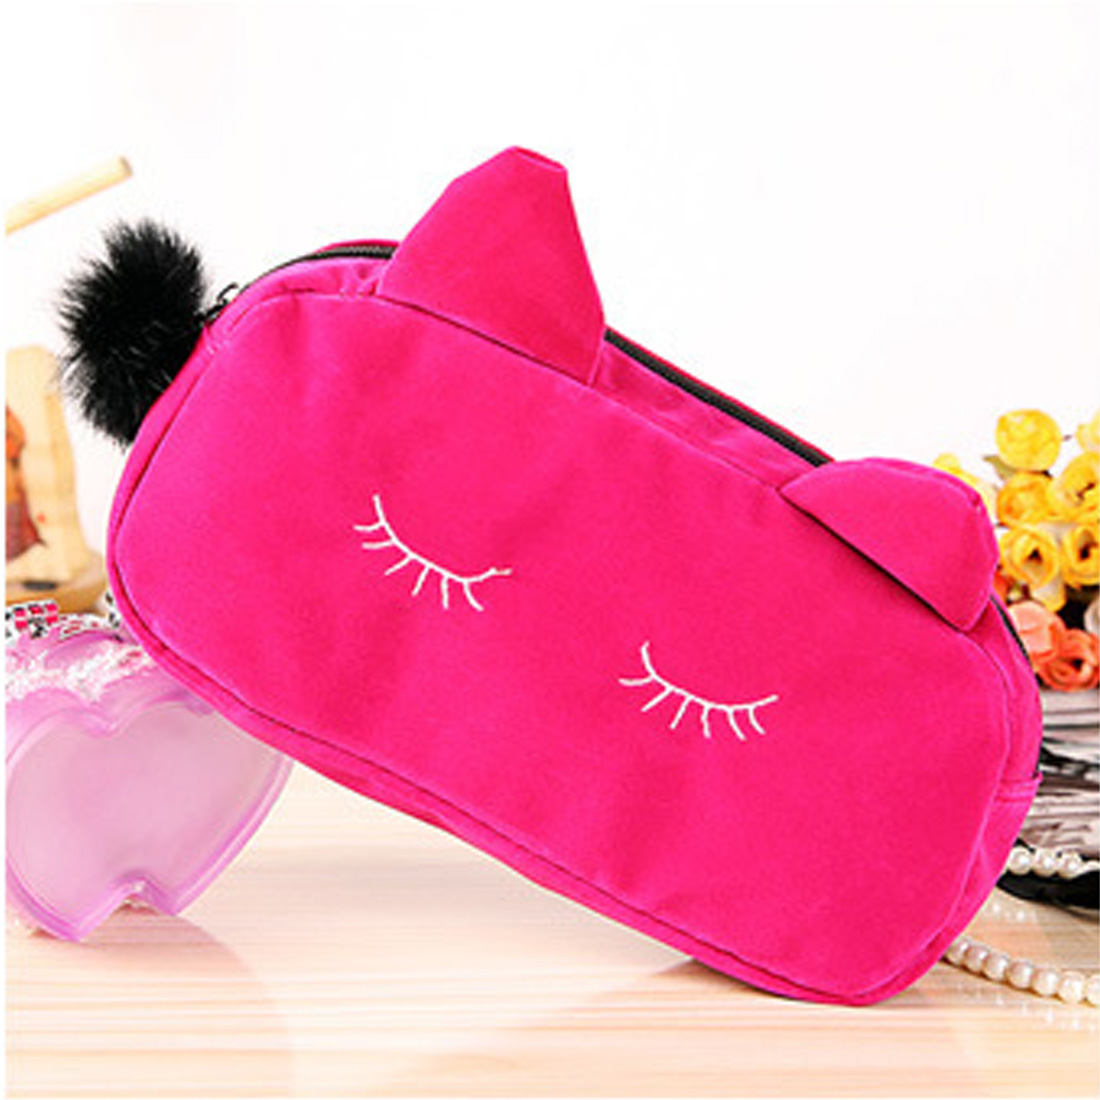 Compare Prices on Ladies Pouch Bag- Online Shopping/Buy Low Price ...